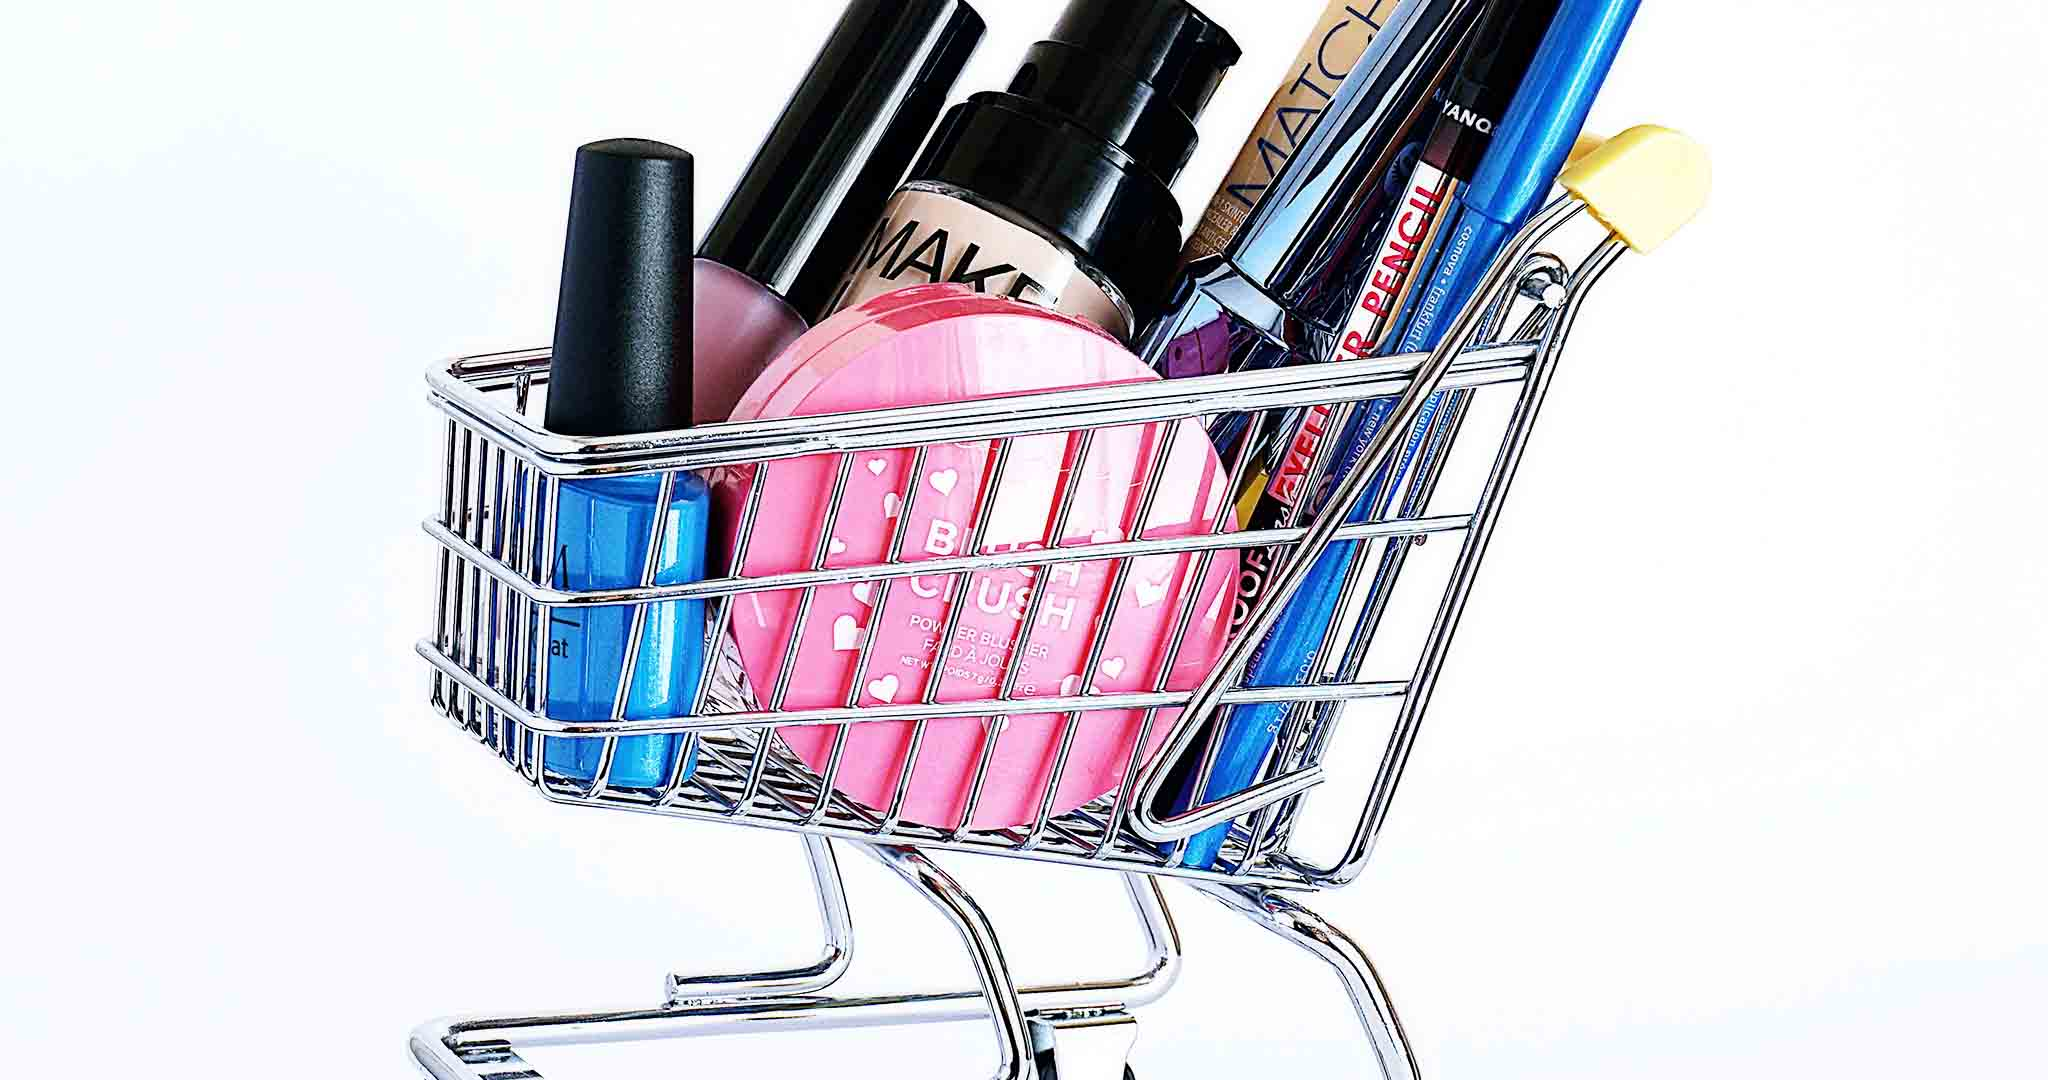 assorted buy cart purchase stock photos